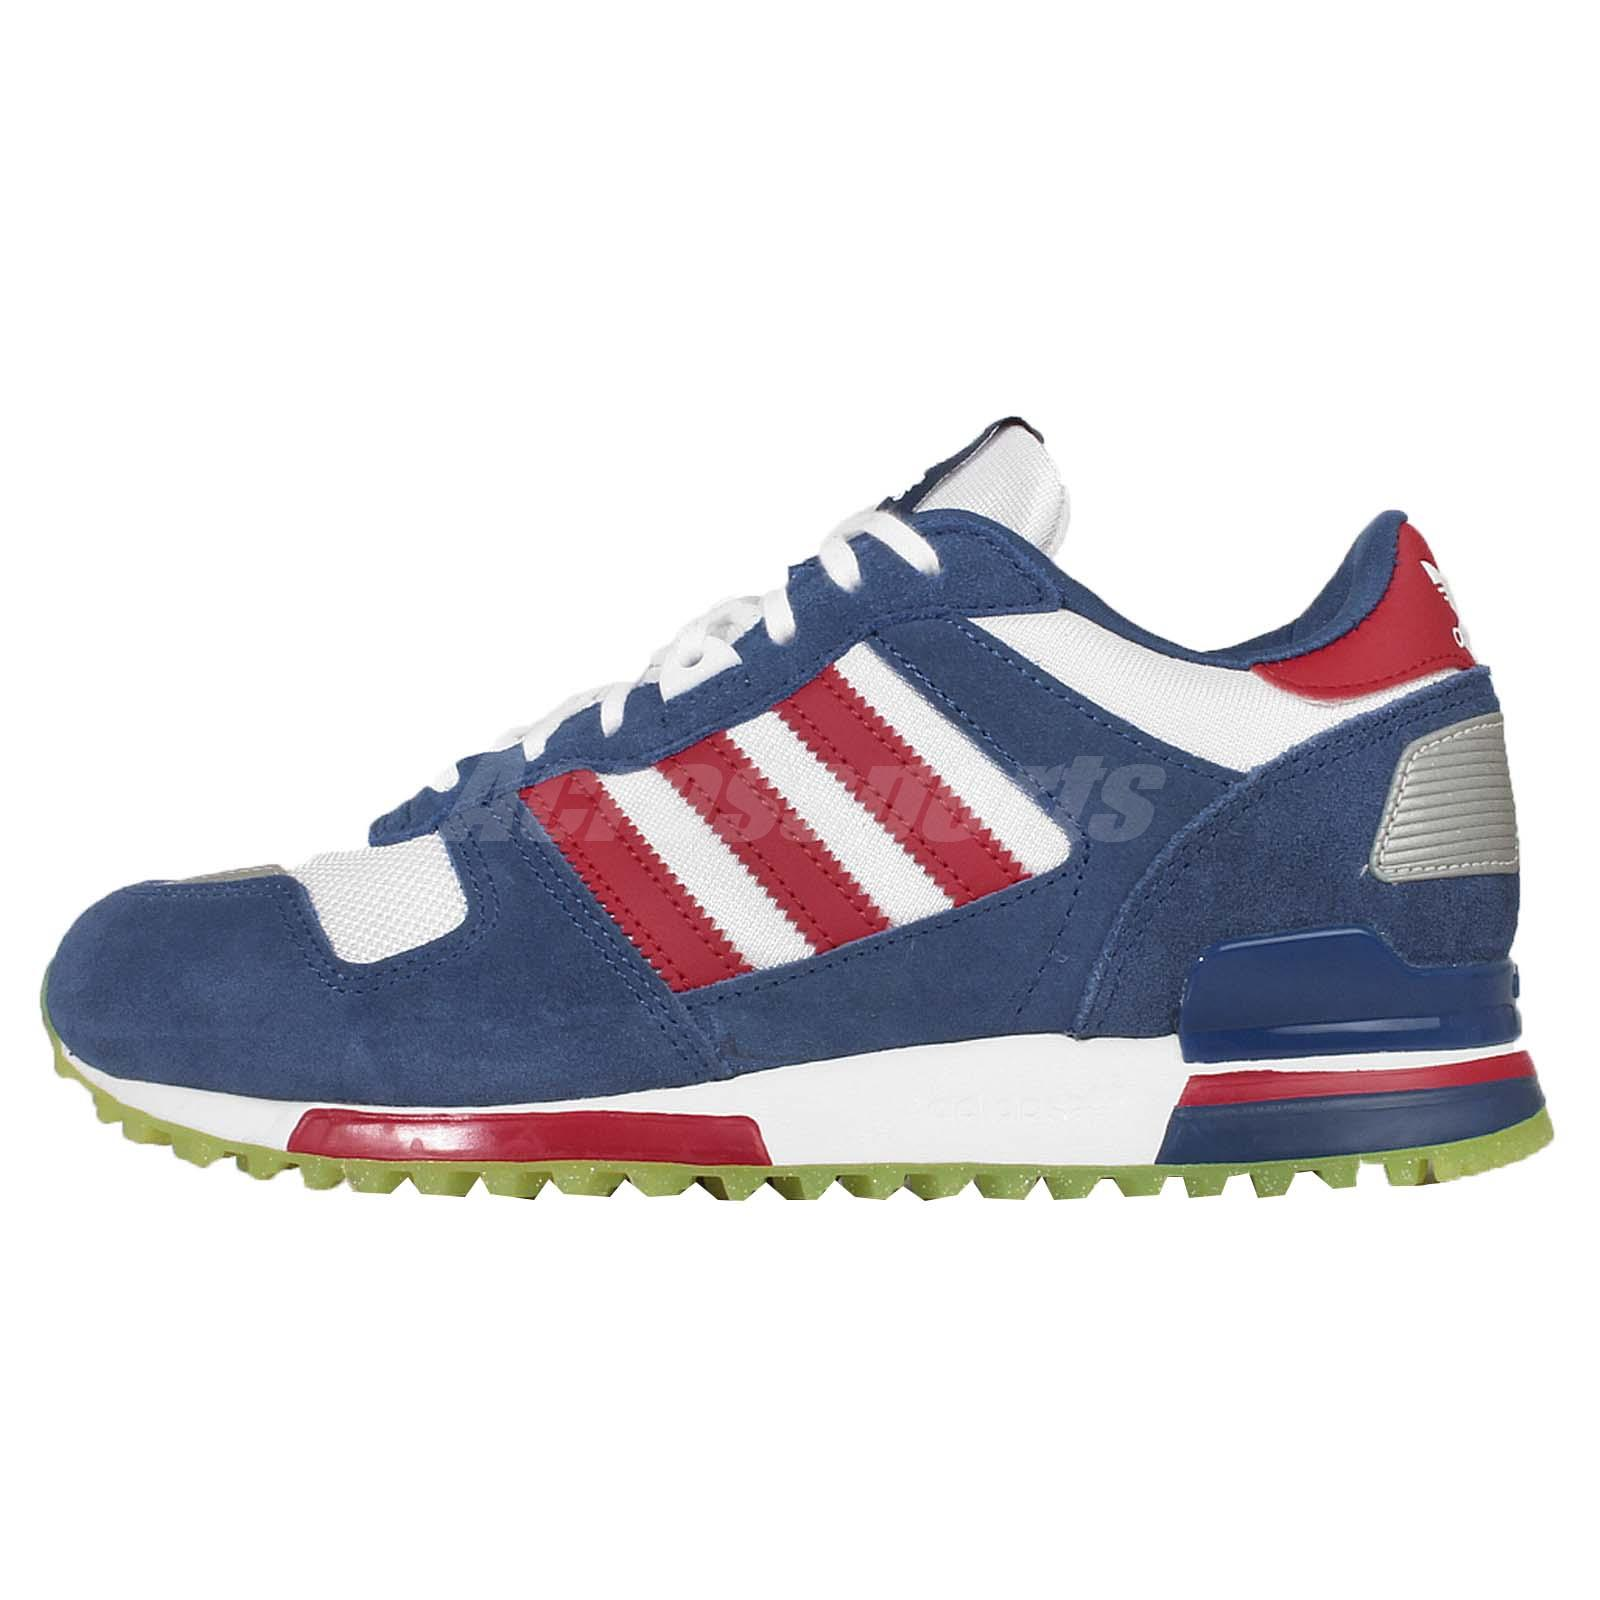 60b1eba98 Navy Adidas Eqt Support Boost Uk Womens Golf Shoe